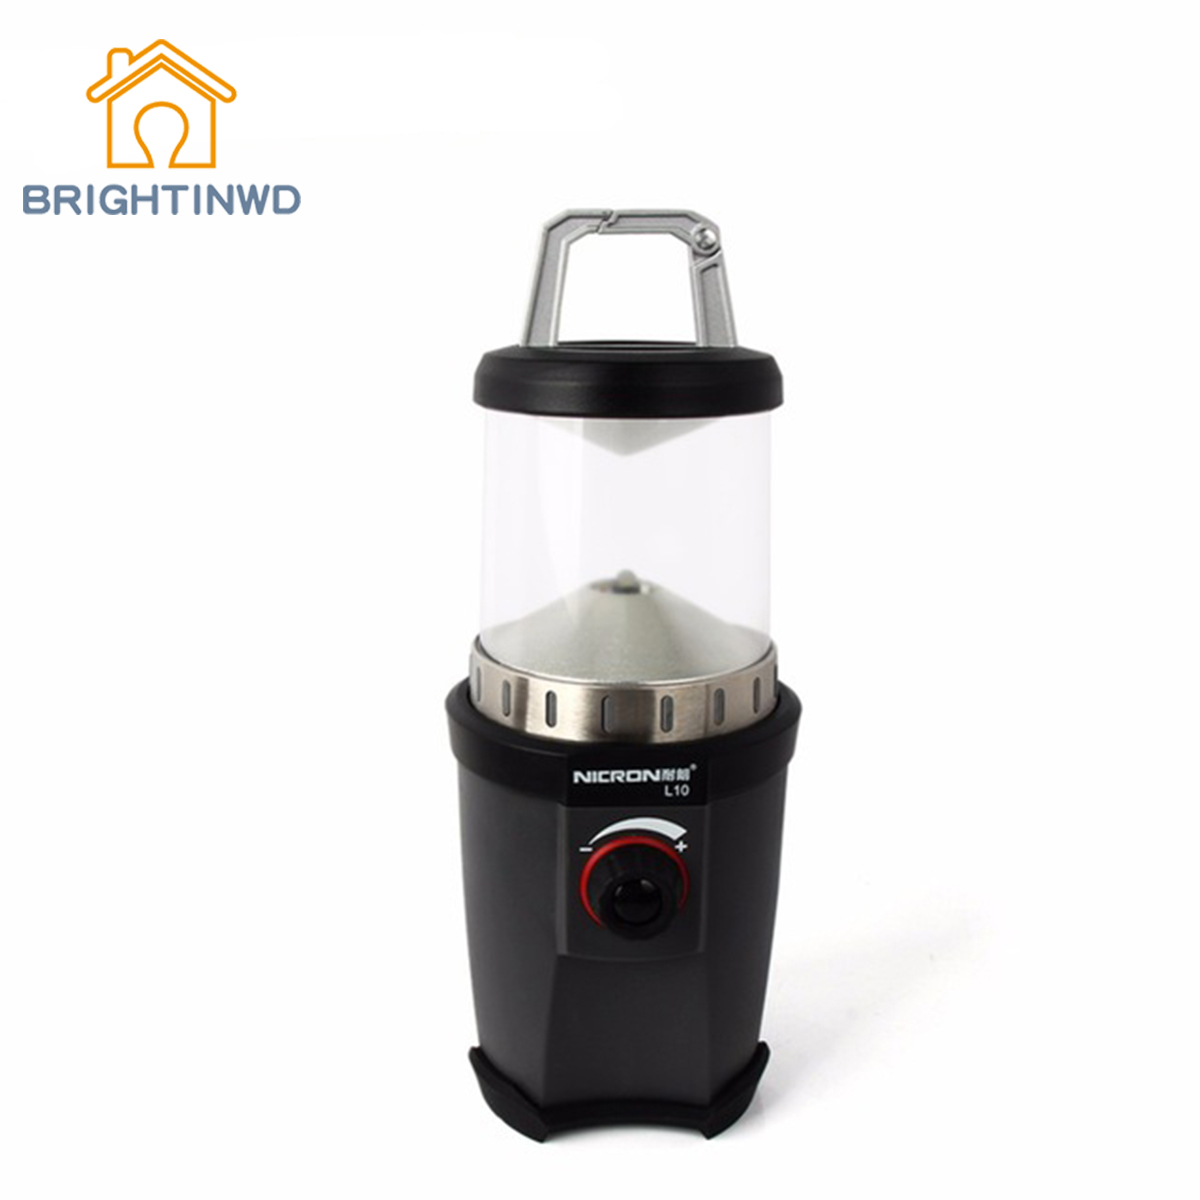 BRIGHTINWD Emergency Light Household Lantern, Camping Lantern Tent Lamp 420LM Super Bright LED Camping Light Camping Lamp